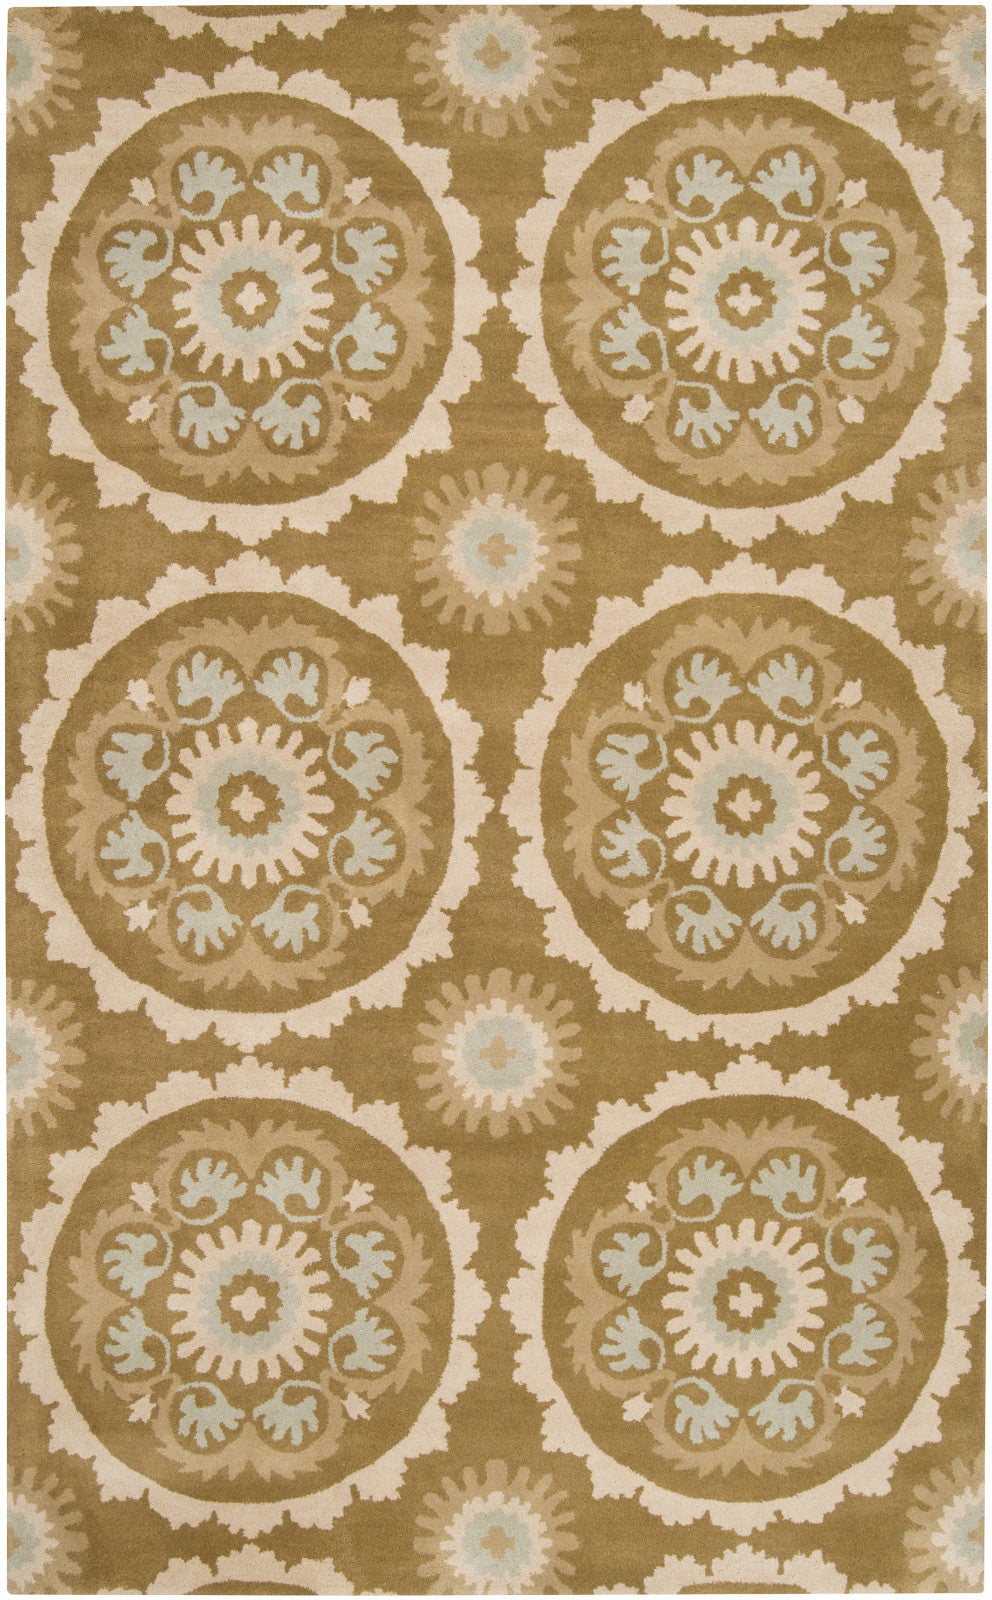 Surya Mosaic MOS-1069 Area Rug by B Smith